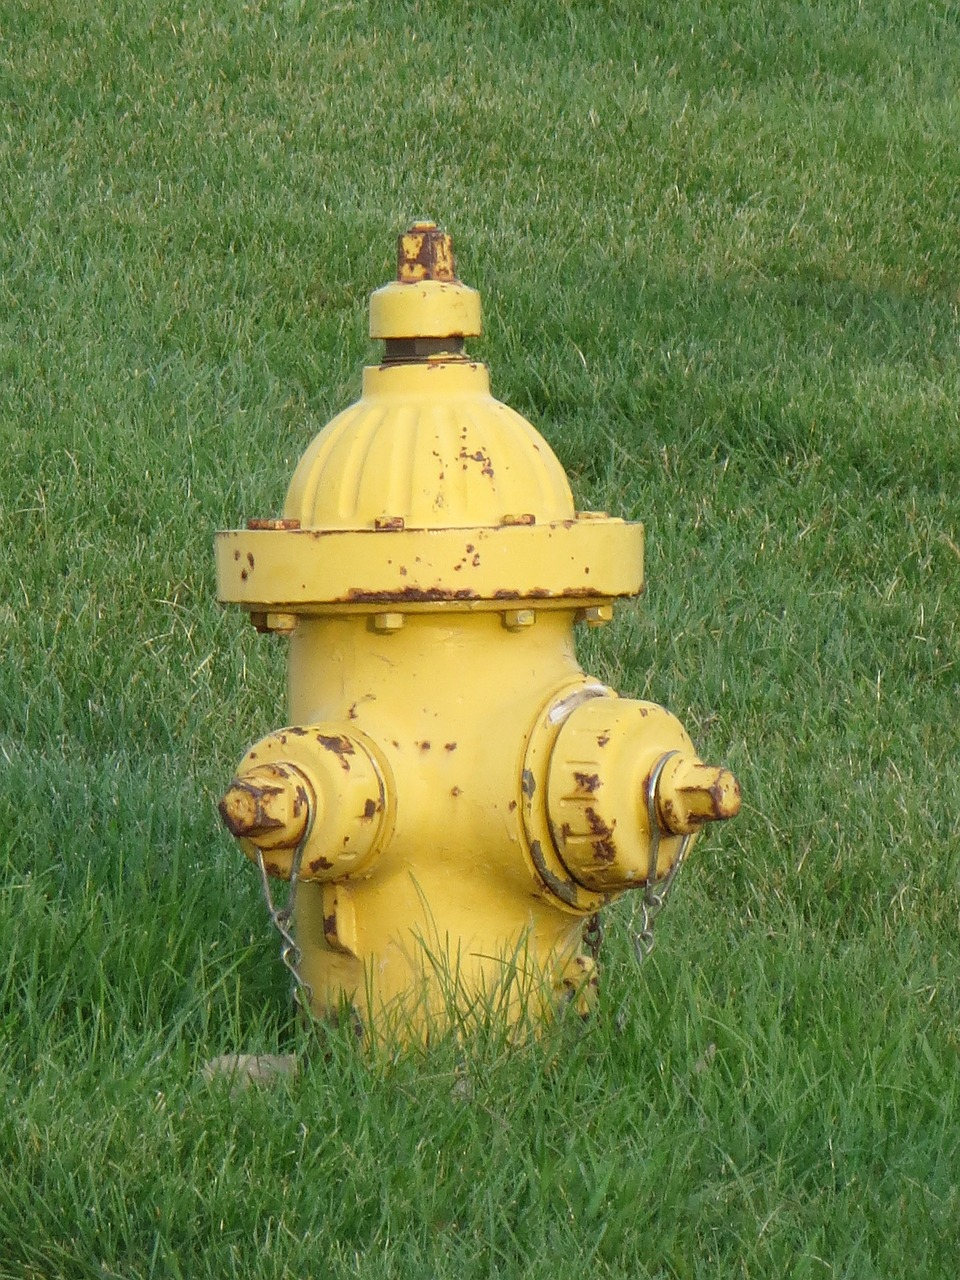 fire hydrant fire fighting free photo